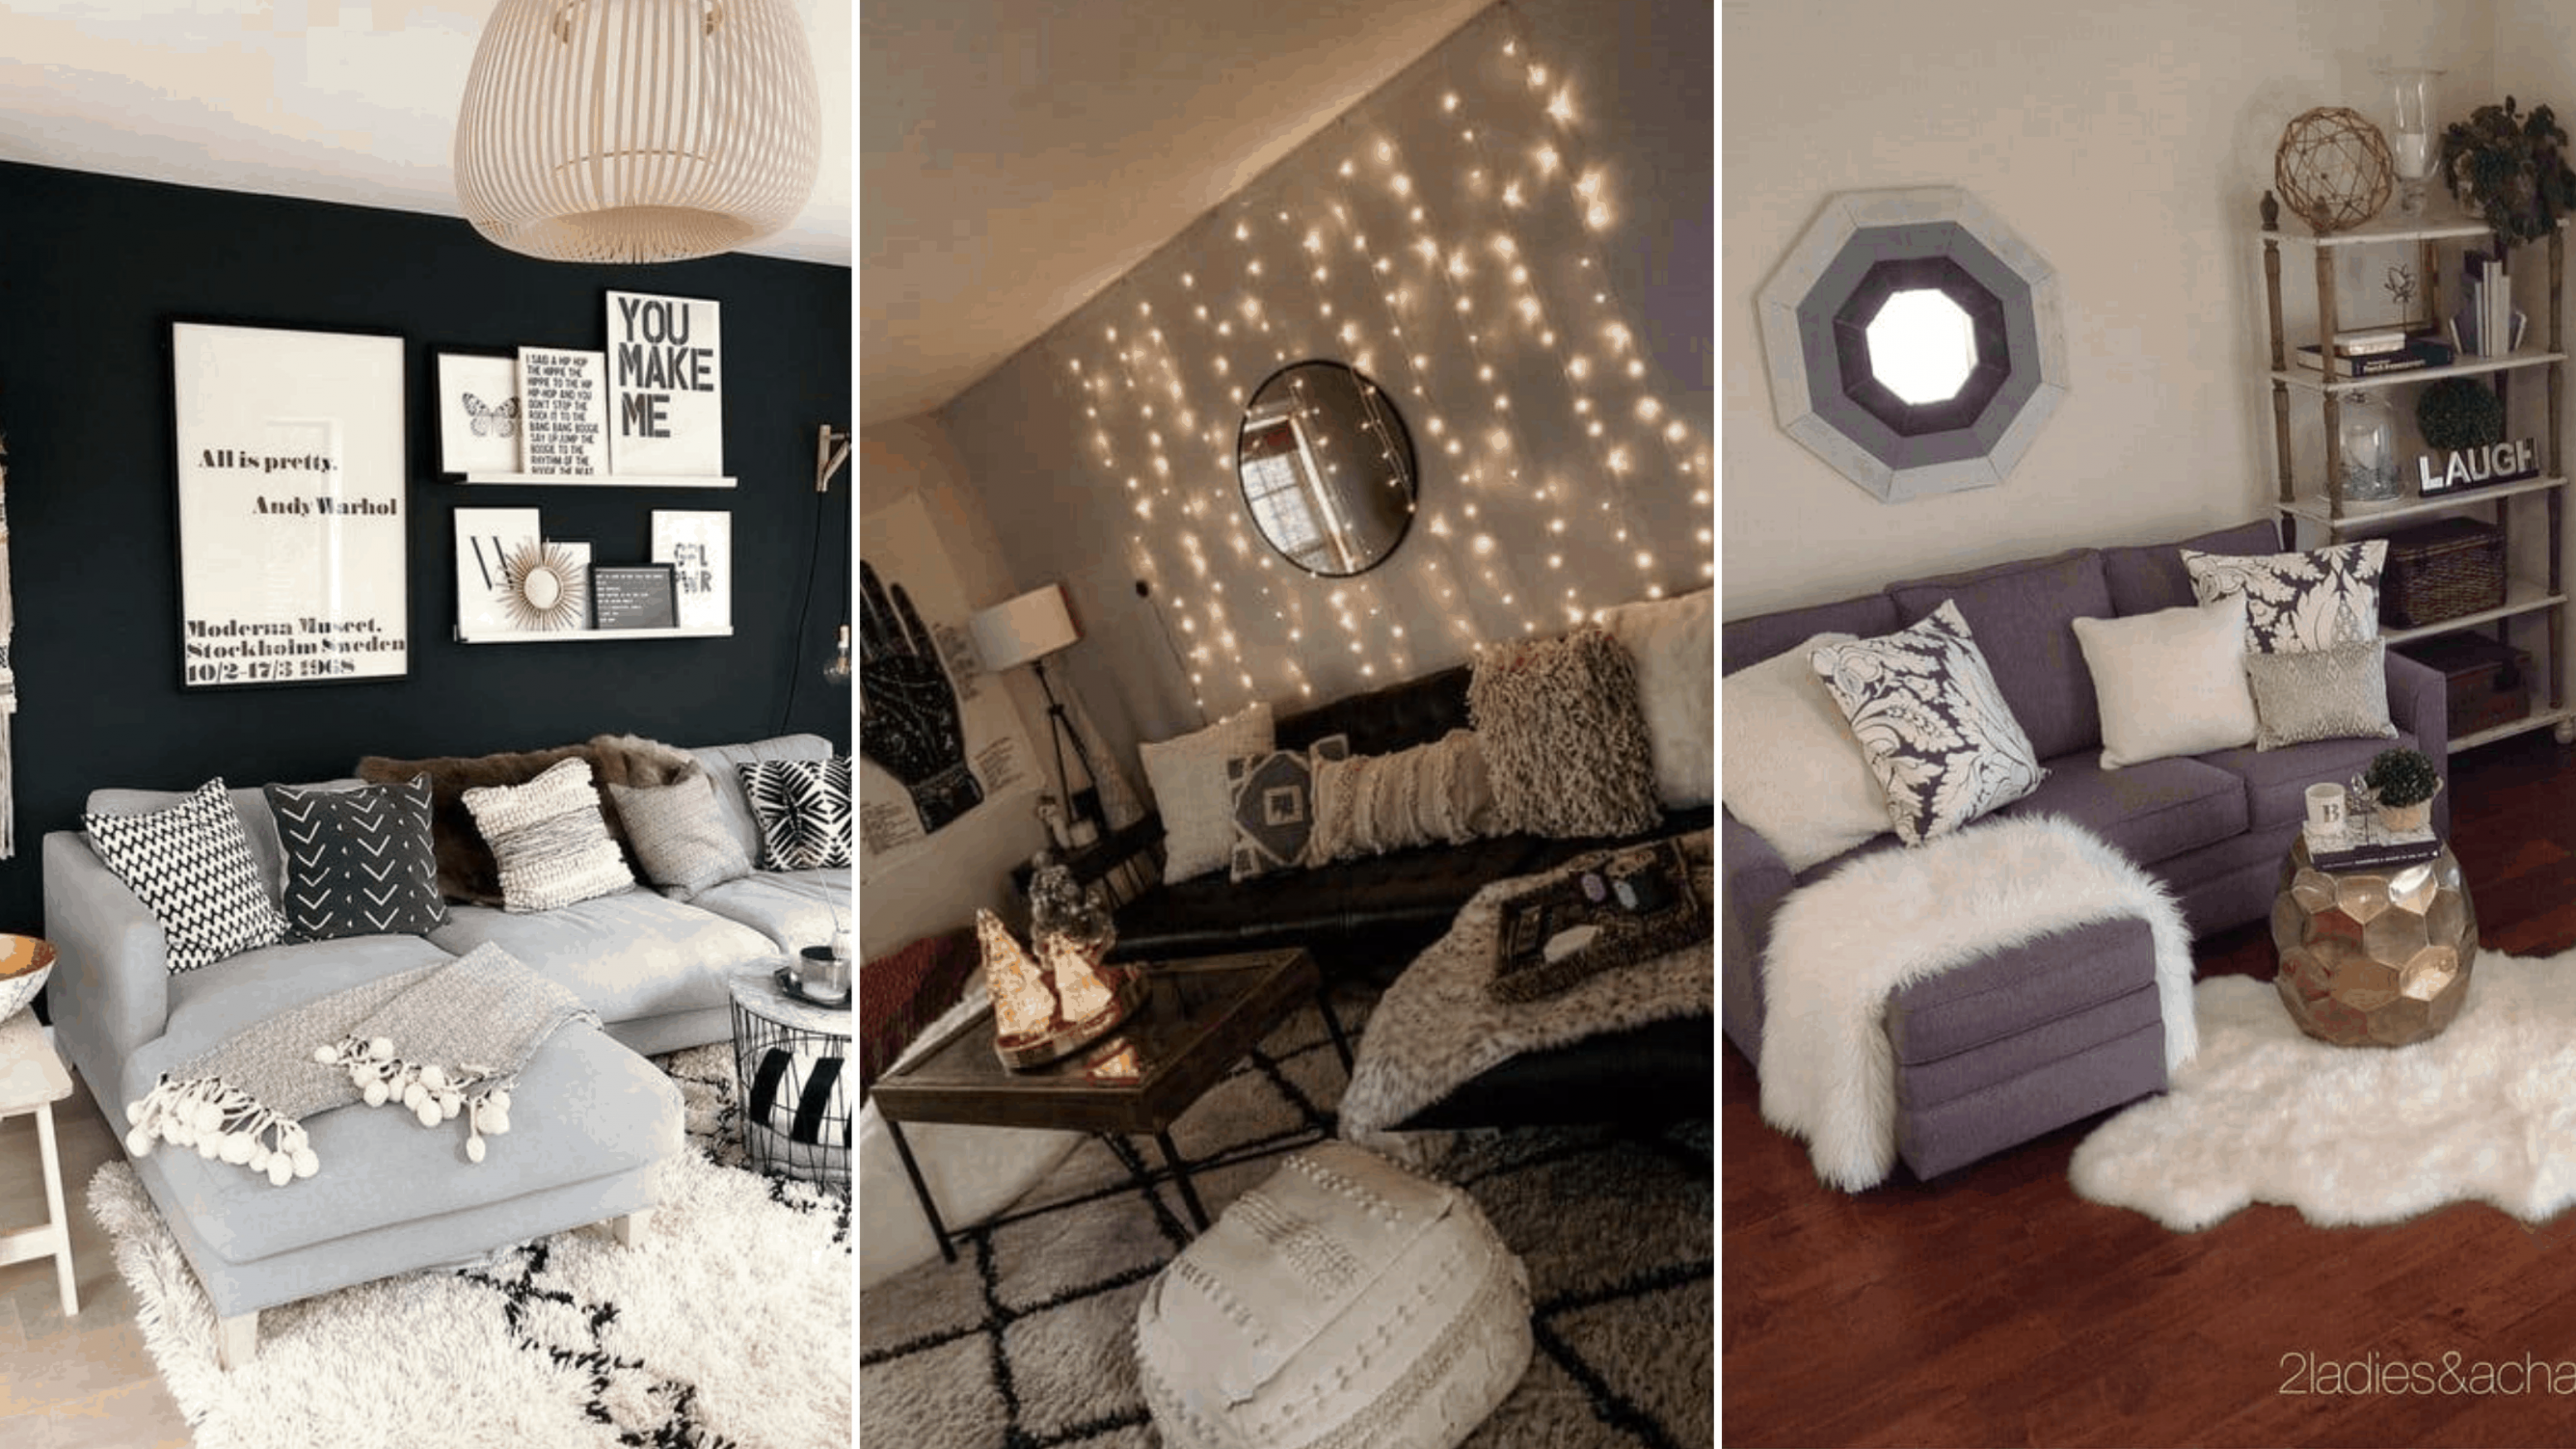 11 Genius College Apartment Decorating Ideas on a Budget - By ...